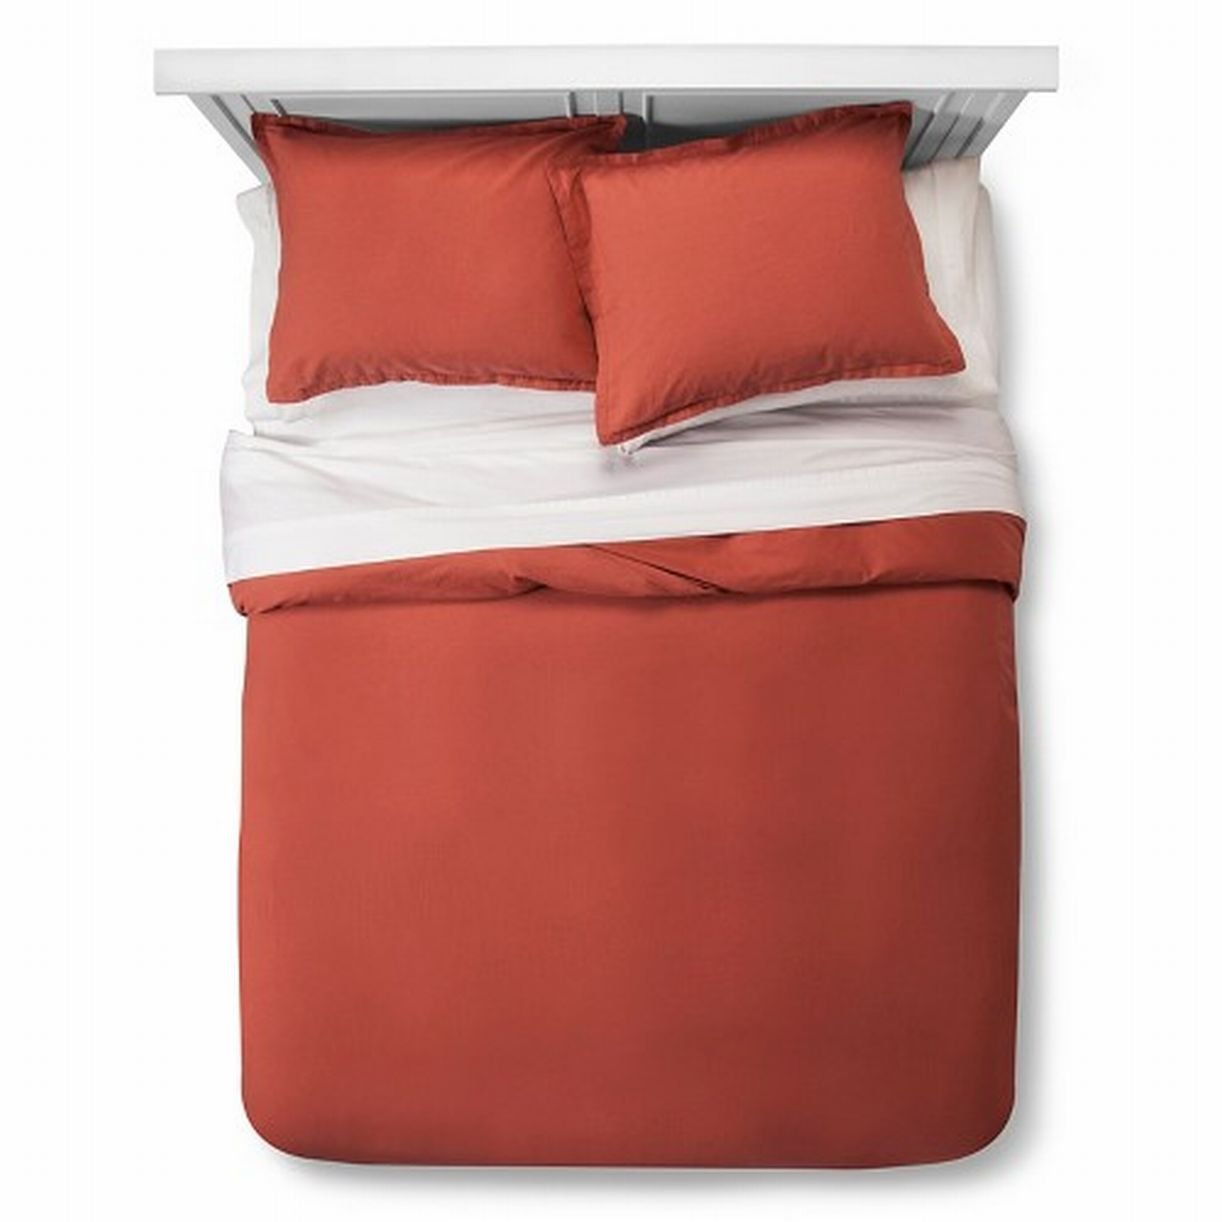 Threshold Burnt Orange Washed Linen Blend Duvet Set King Cover & Shams 3 Pc